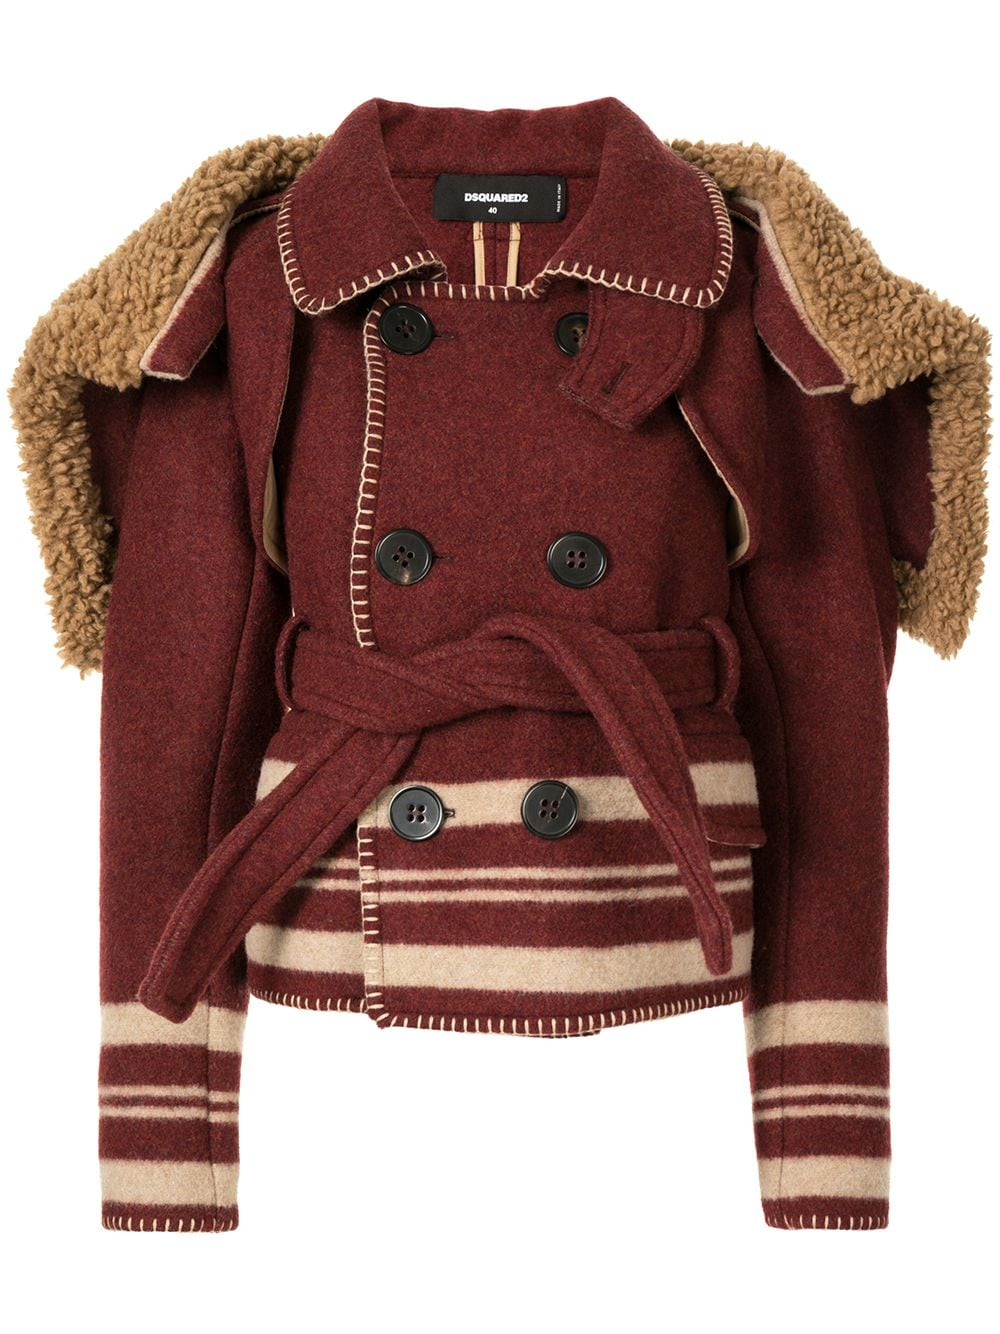 Dsquared2 cape-detail peacoat - DO NOT USE - BURGUNDY von Dsquared2